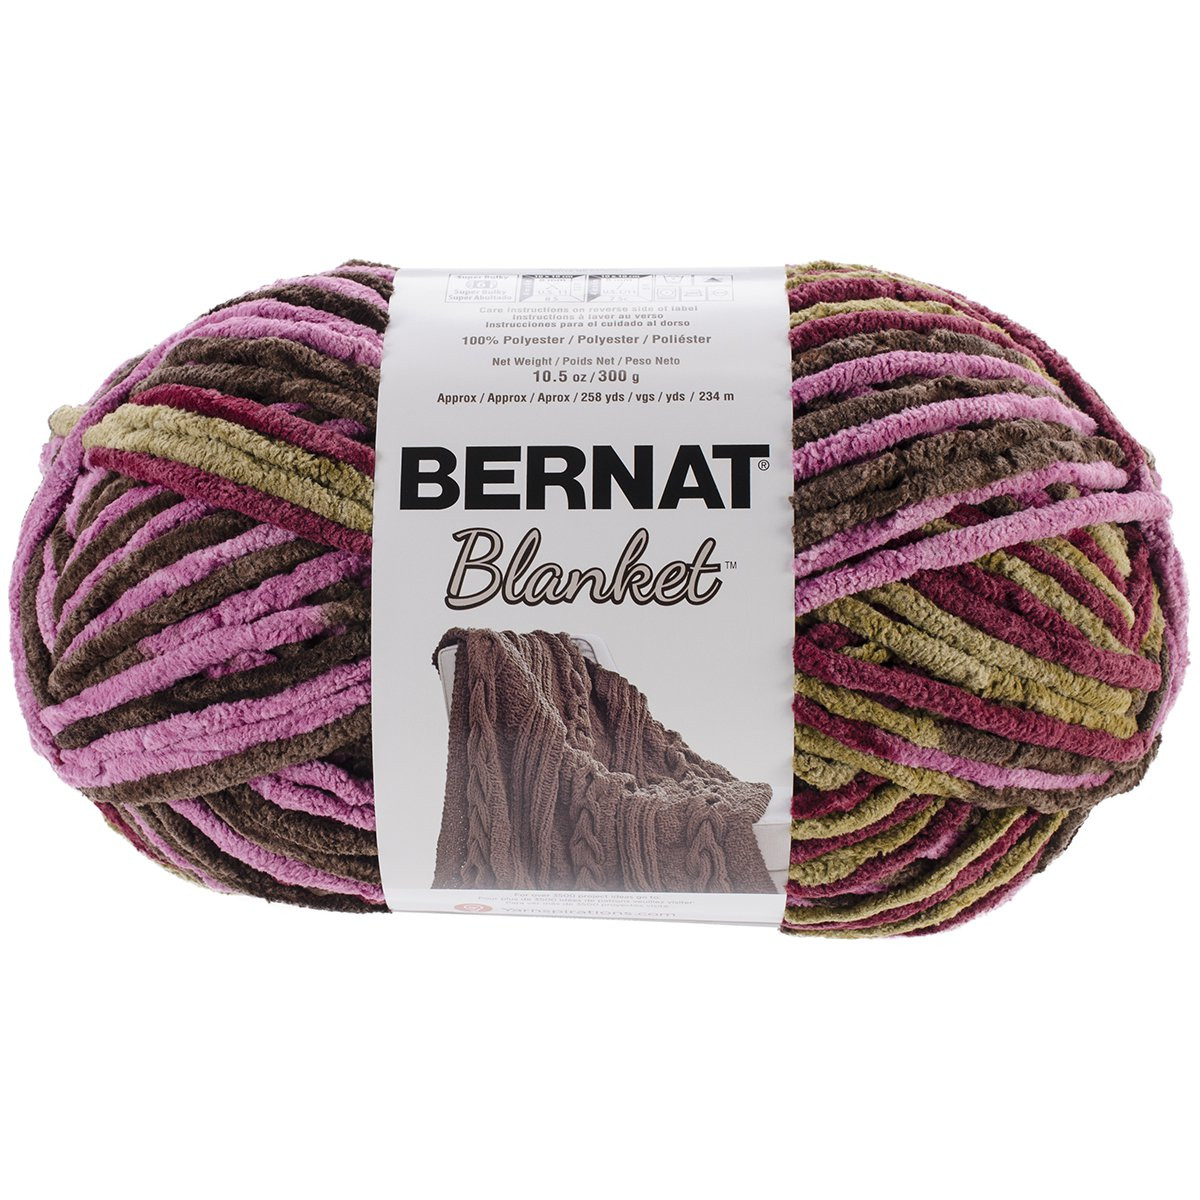 Bernat Chunky Yarn Big Ball Lovely Spinrite Bernat Blanket Big Ball Yarn Of Top 43 Pictures Bernat Chunky Yarn Big Ball